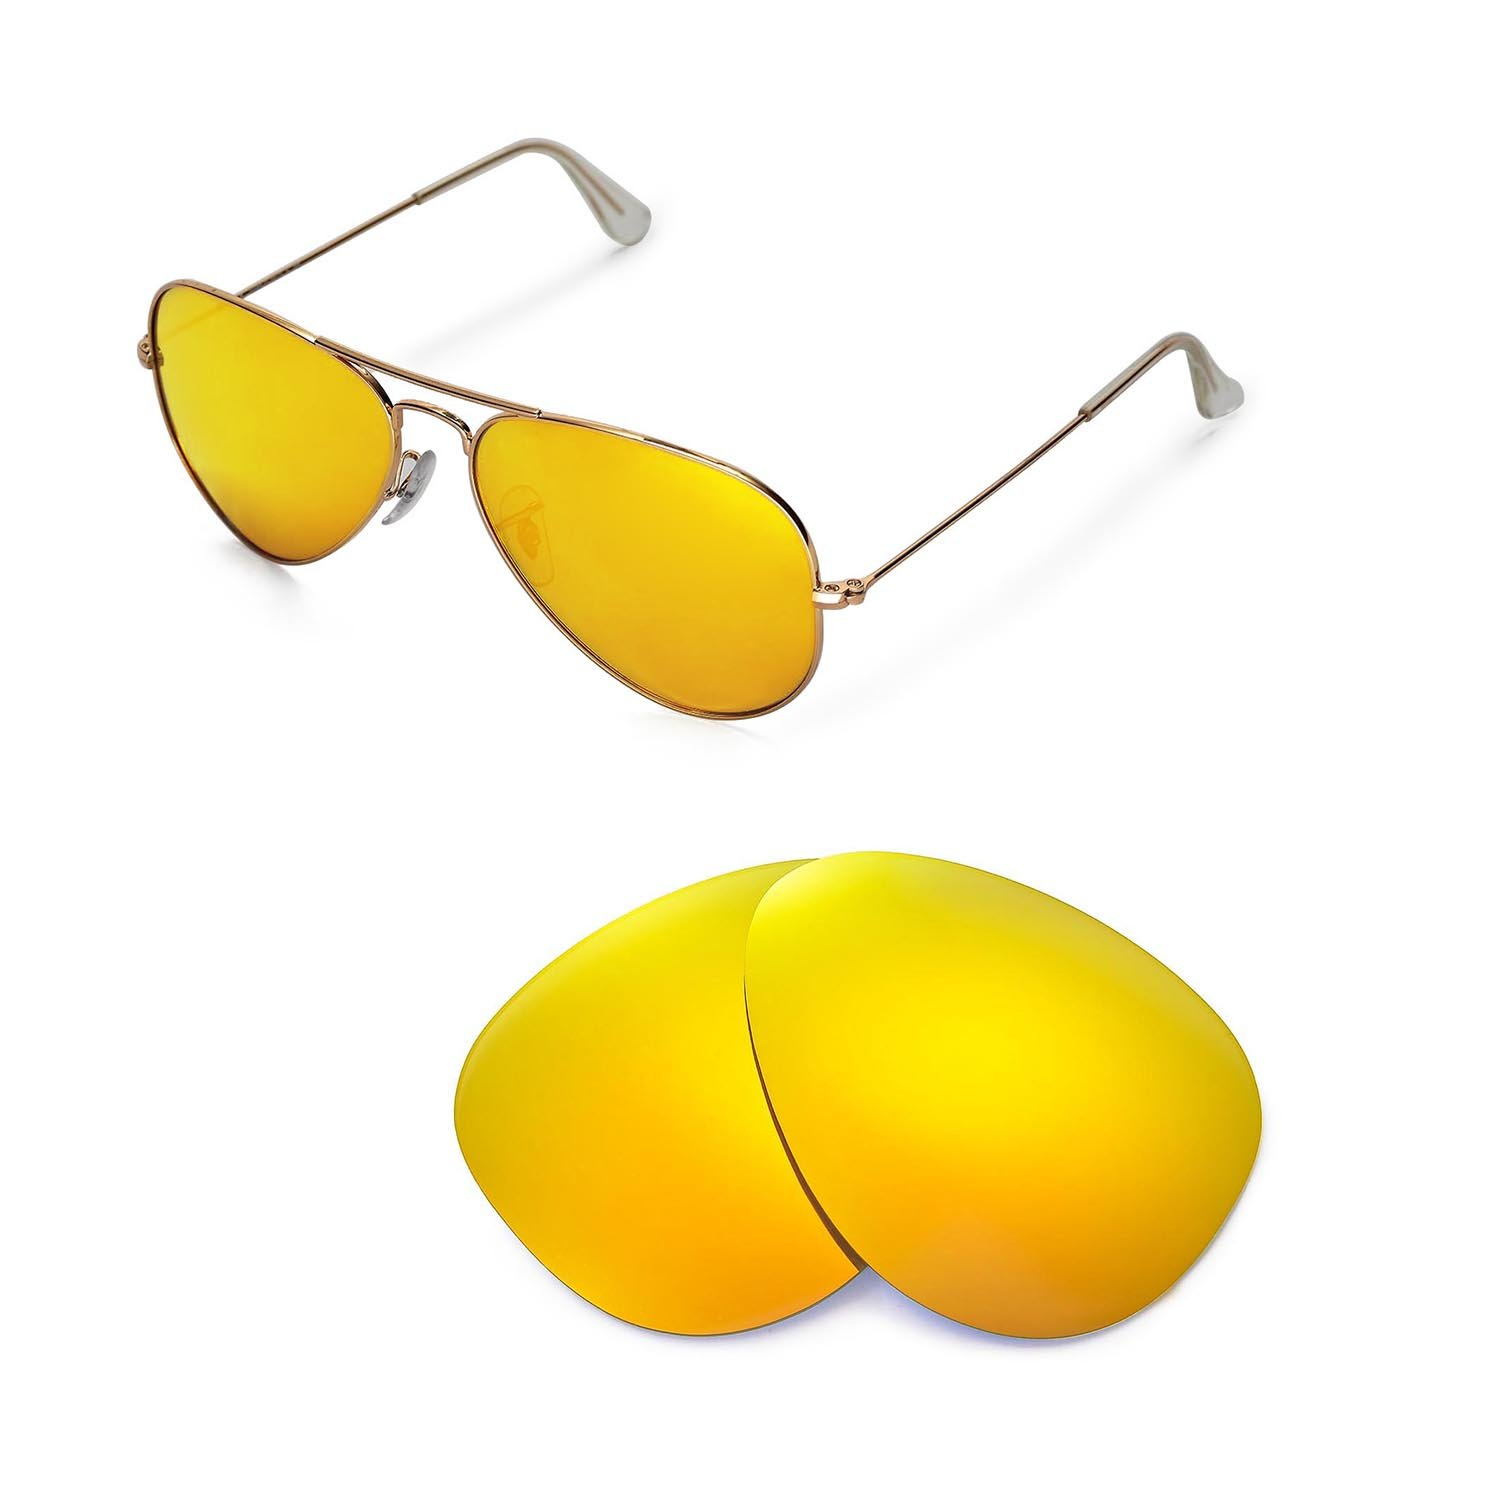 b19d3636c39 Amazon.com  Walleva Replacement Lenses for Ray-Ban Aviator Large Metal  RB3025 58mm Sunglasses - Multiple Options Available (24K Gold - Polarized)   Sports   ...